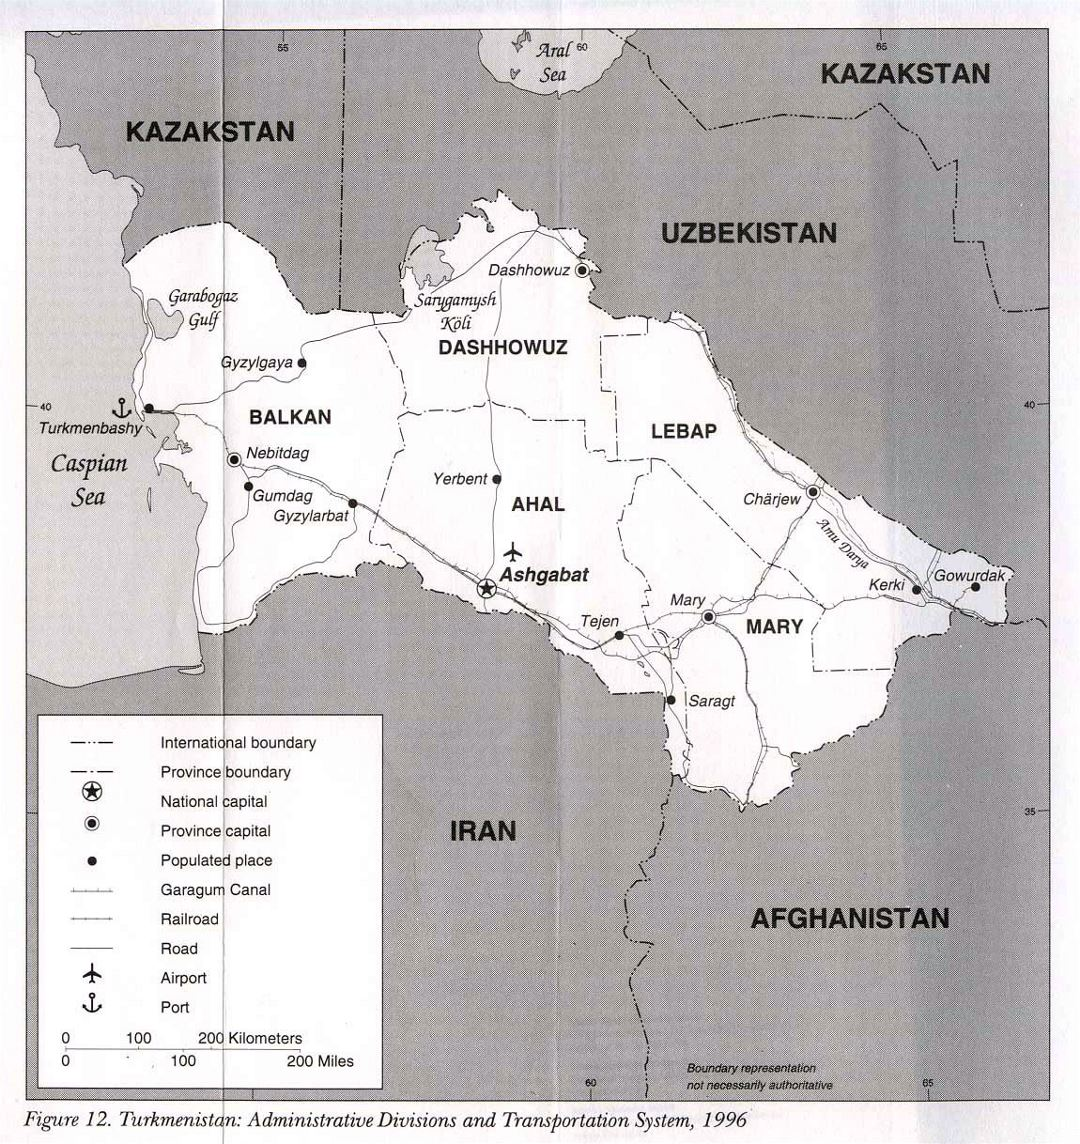 Detailed administrative divisions and transportation system map of Turkmenistan - 1996